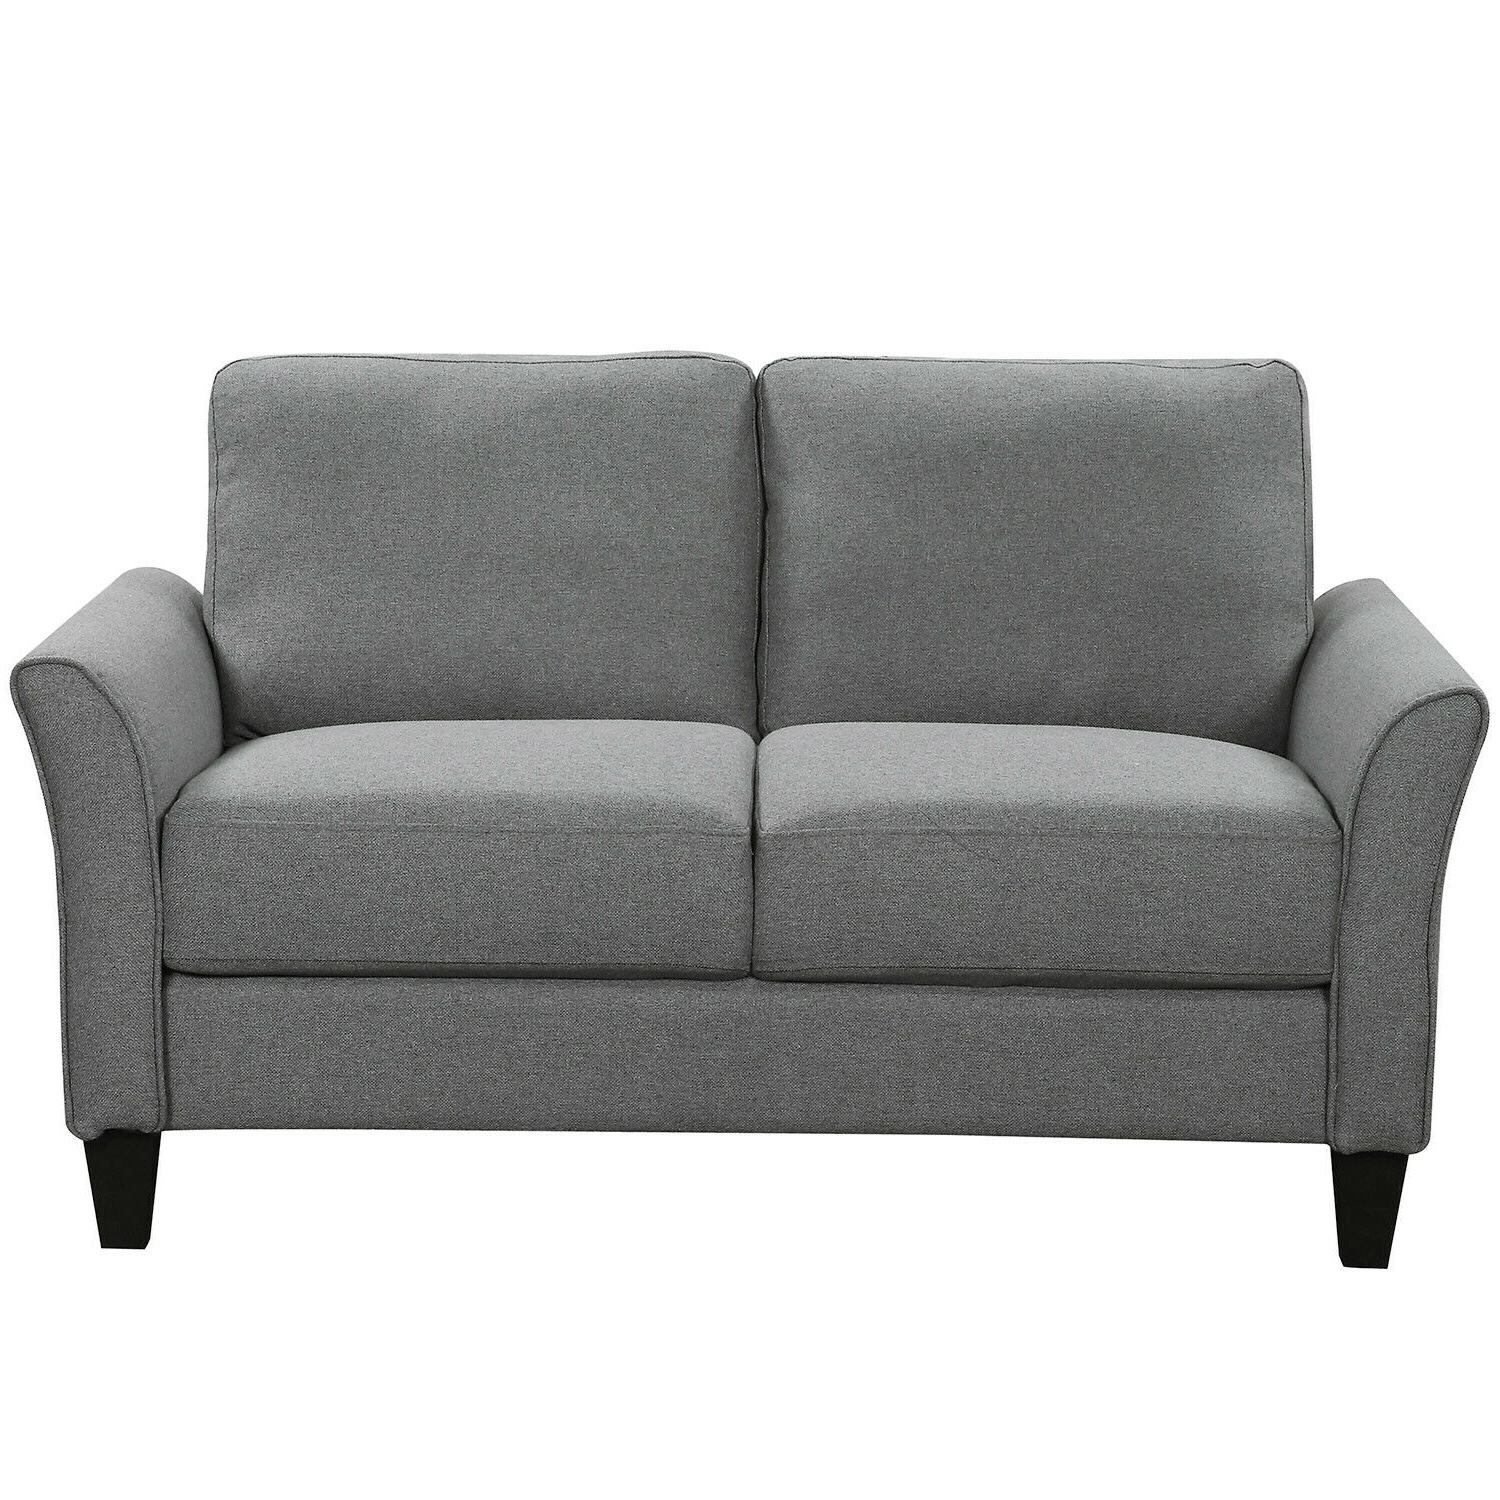 Sofa Recliner Set Chair Sectional Living Room